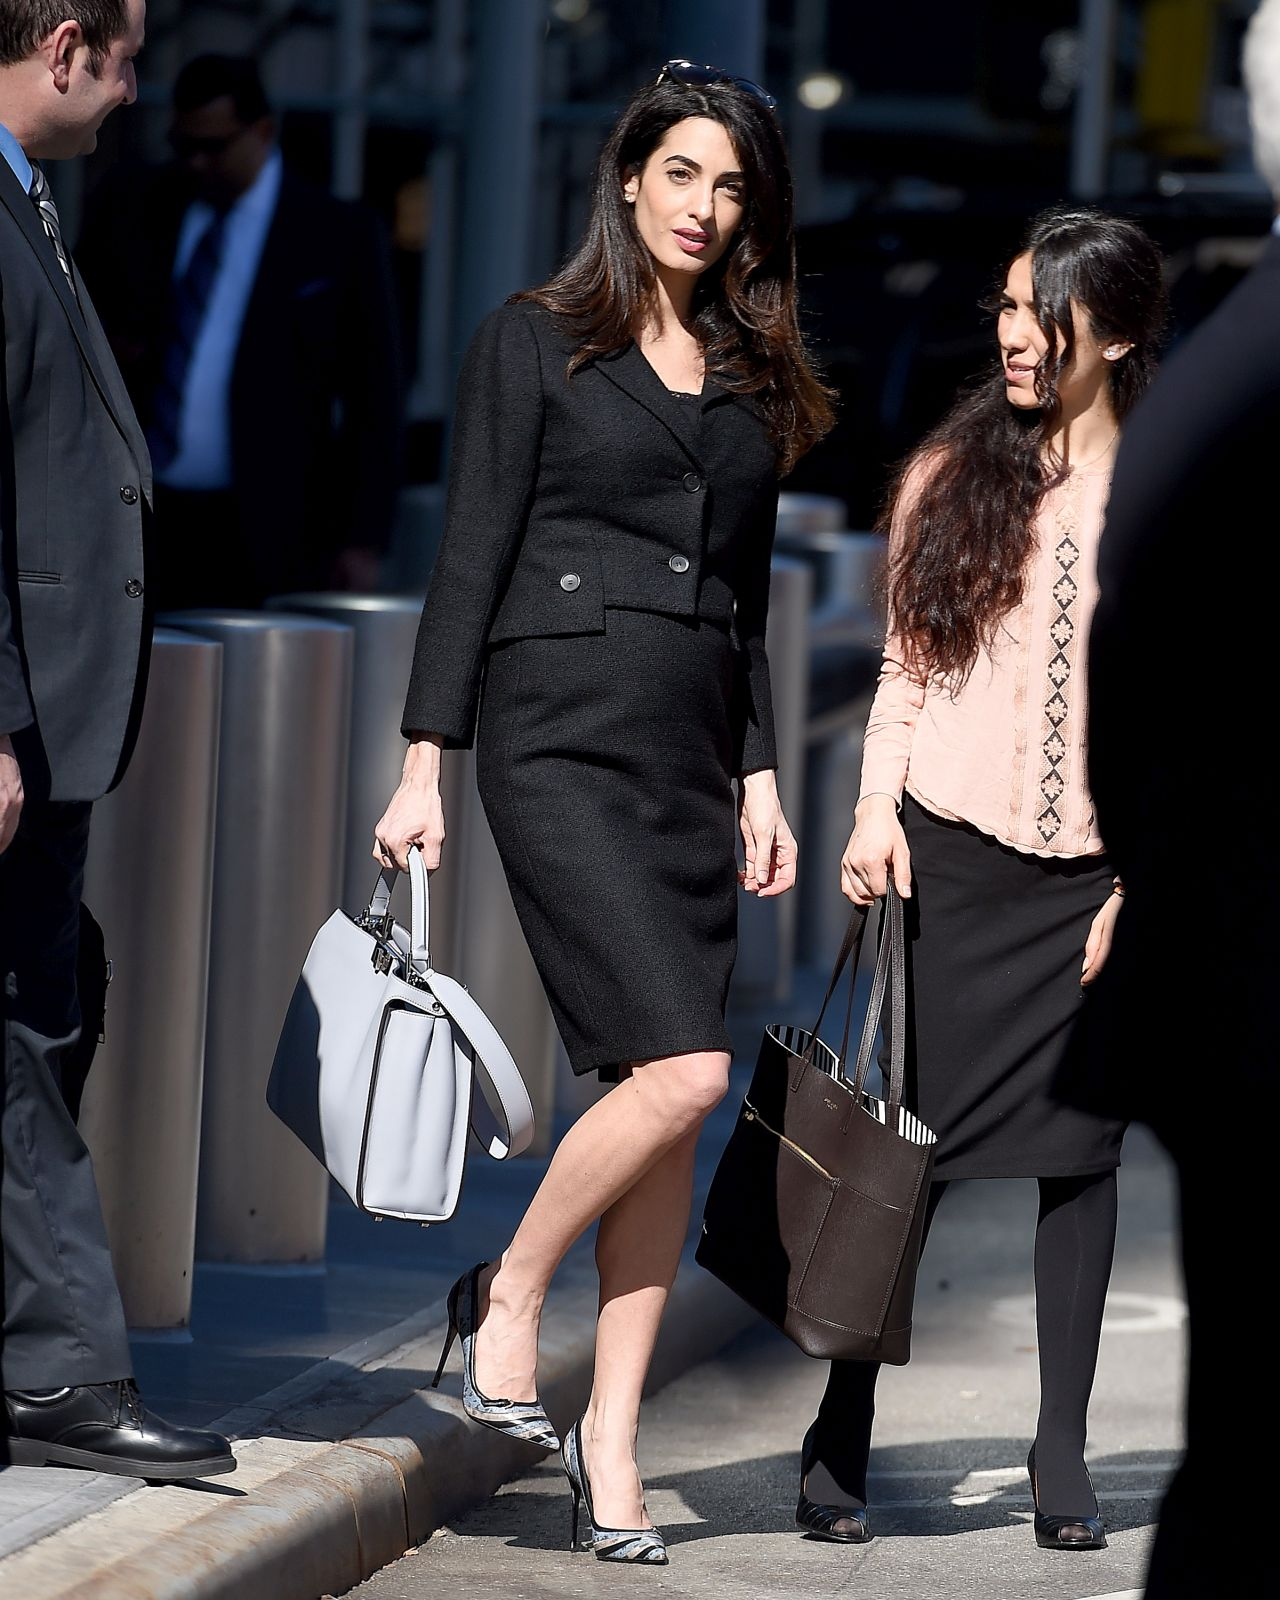 EXCLUSIVE: ** PREMIUM EXCLUSIVE RATES APPLY**  Amal Clooney seen wearing all-black clothing on International Women's Day at the UN in New York City <P> Pictured: Amal Clooney <B>Ref: SPL1458532  080317   EXCLUSIVE</B><BR/> Picture by: Robert O'neil/Splash News<BR/> </P><P> <B>Splash News and Pictures</B><BR/> Los Angeles: 310-821-2666<BR/> New York: 212-619-2666<BR/> London: 870-934-2666<BR/> photodesk@splashnews.com<BR/> </P>